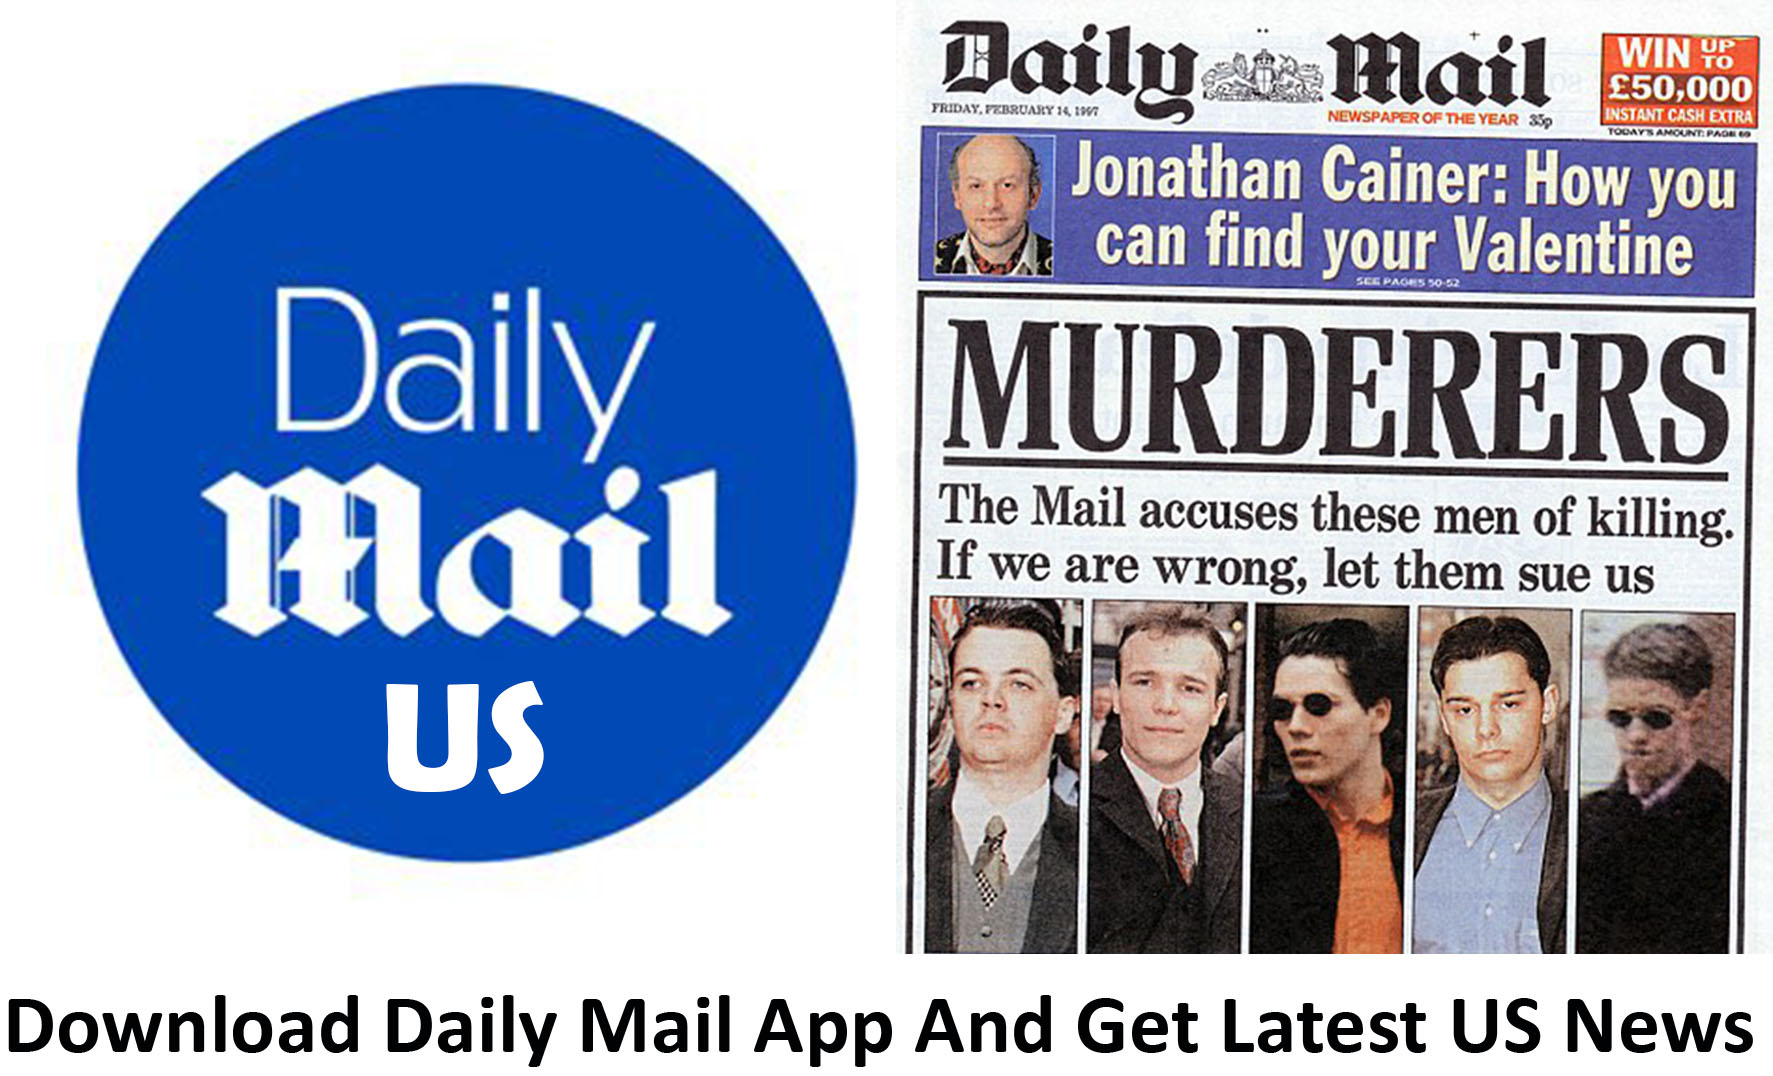 Daily Mail US - Download Daily Mail App And Get Latest US News